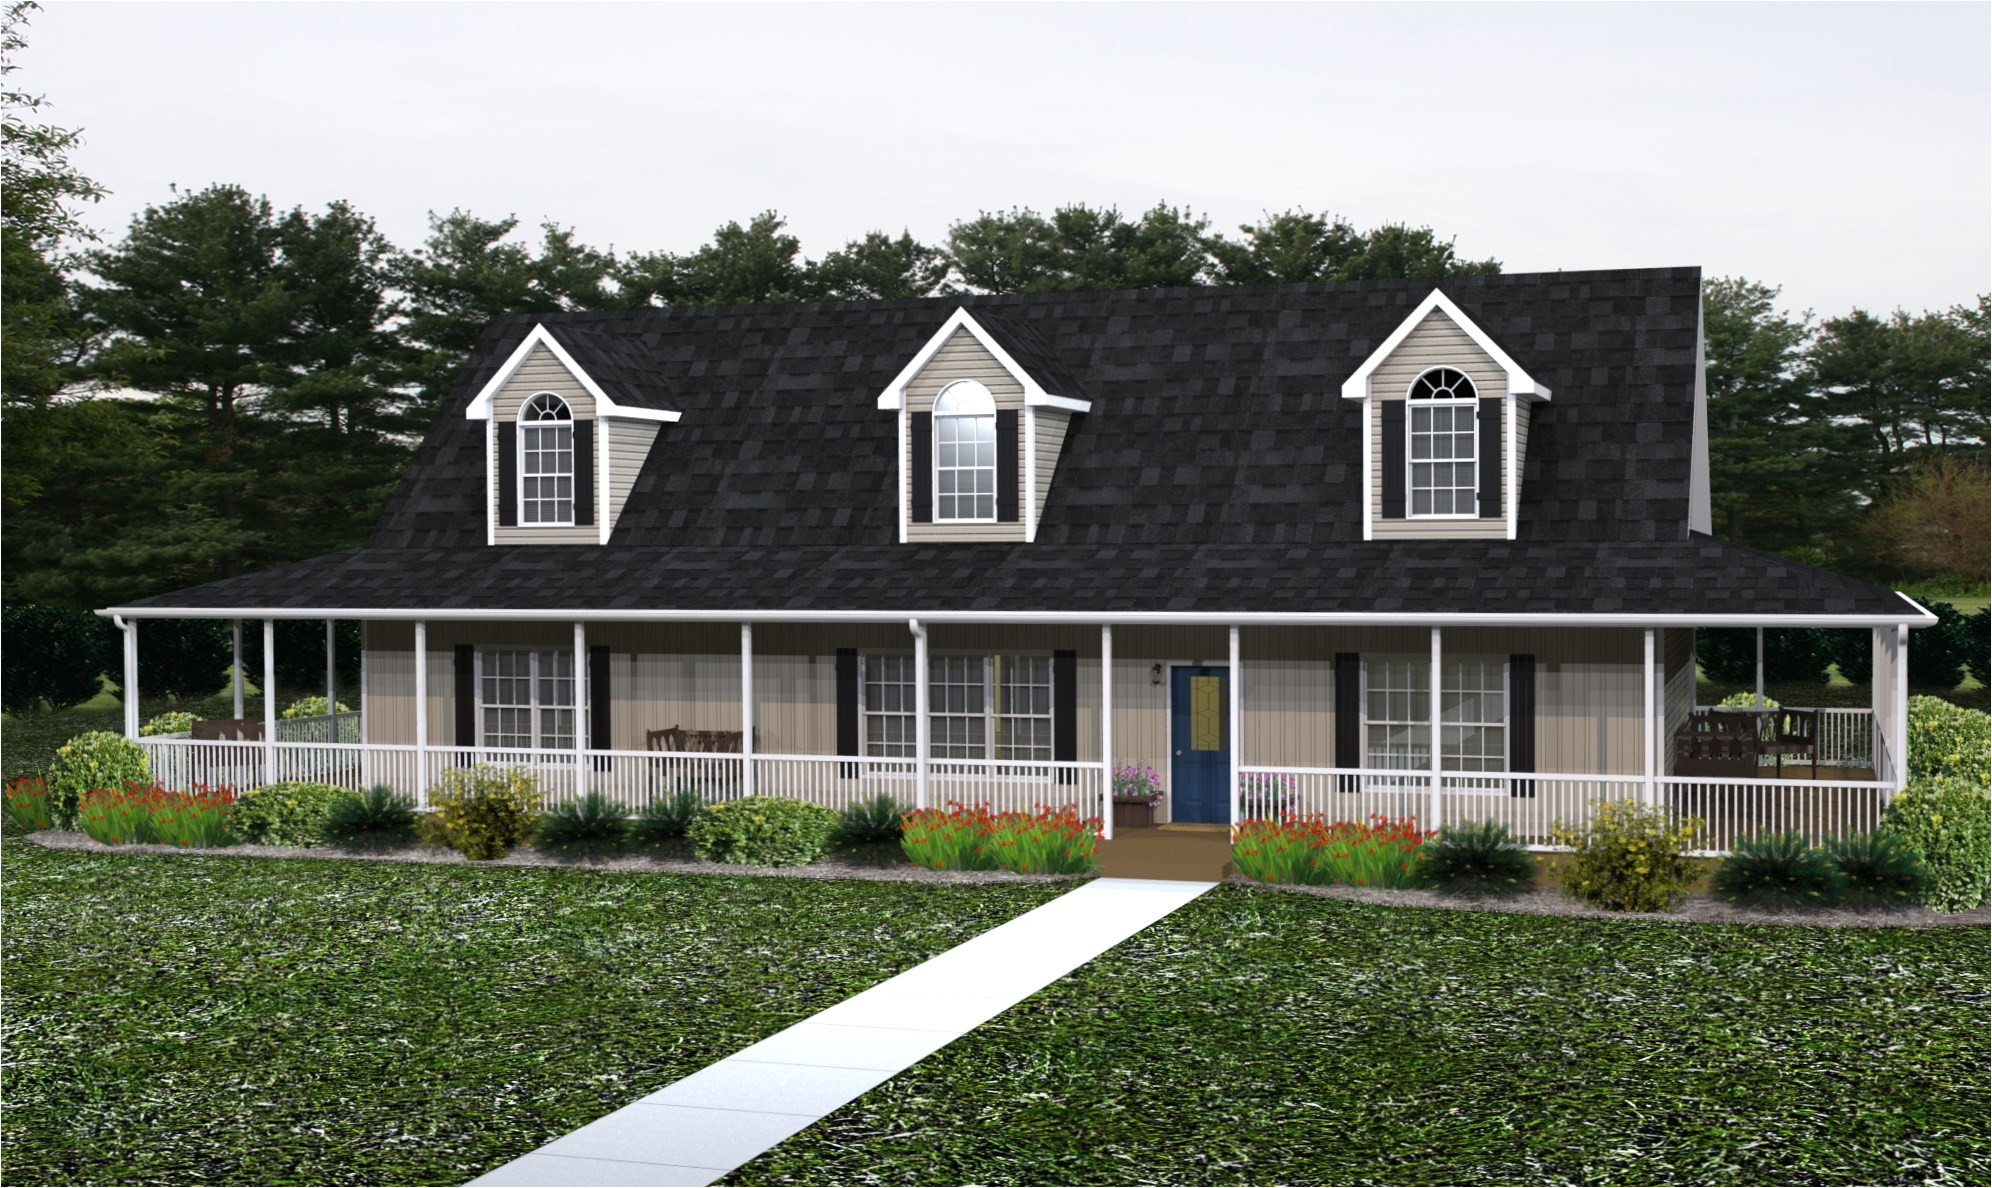 10225 modular homes with large porches